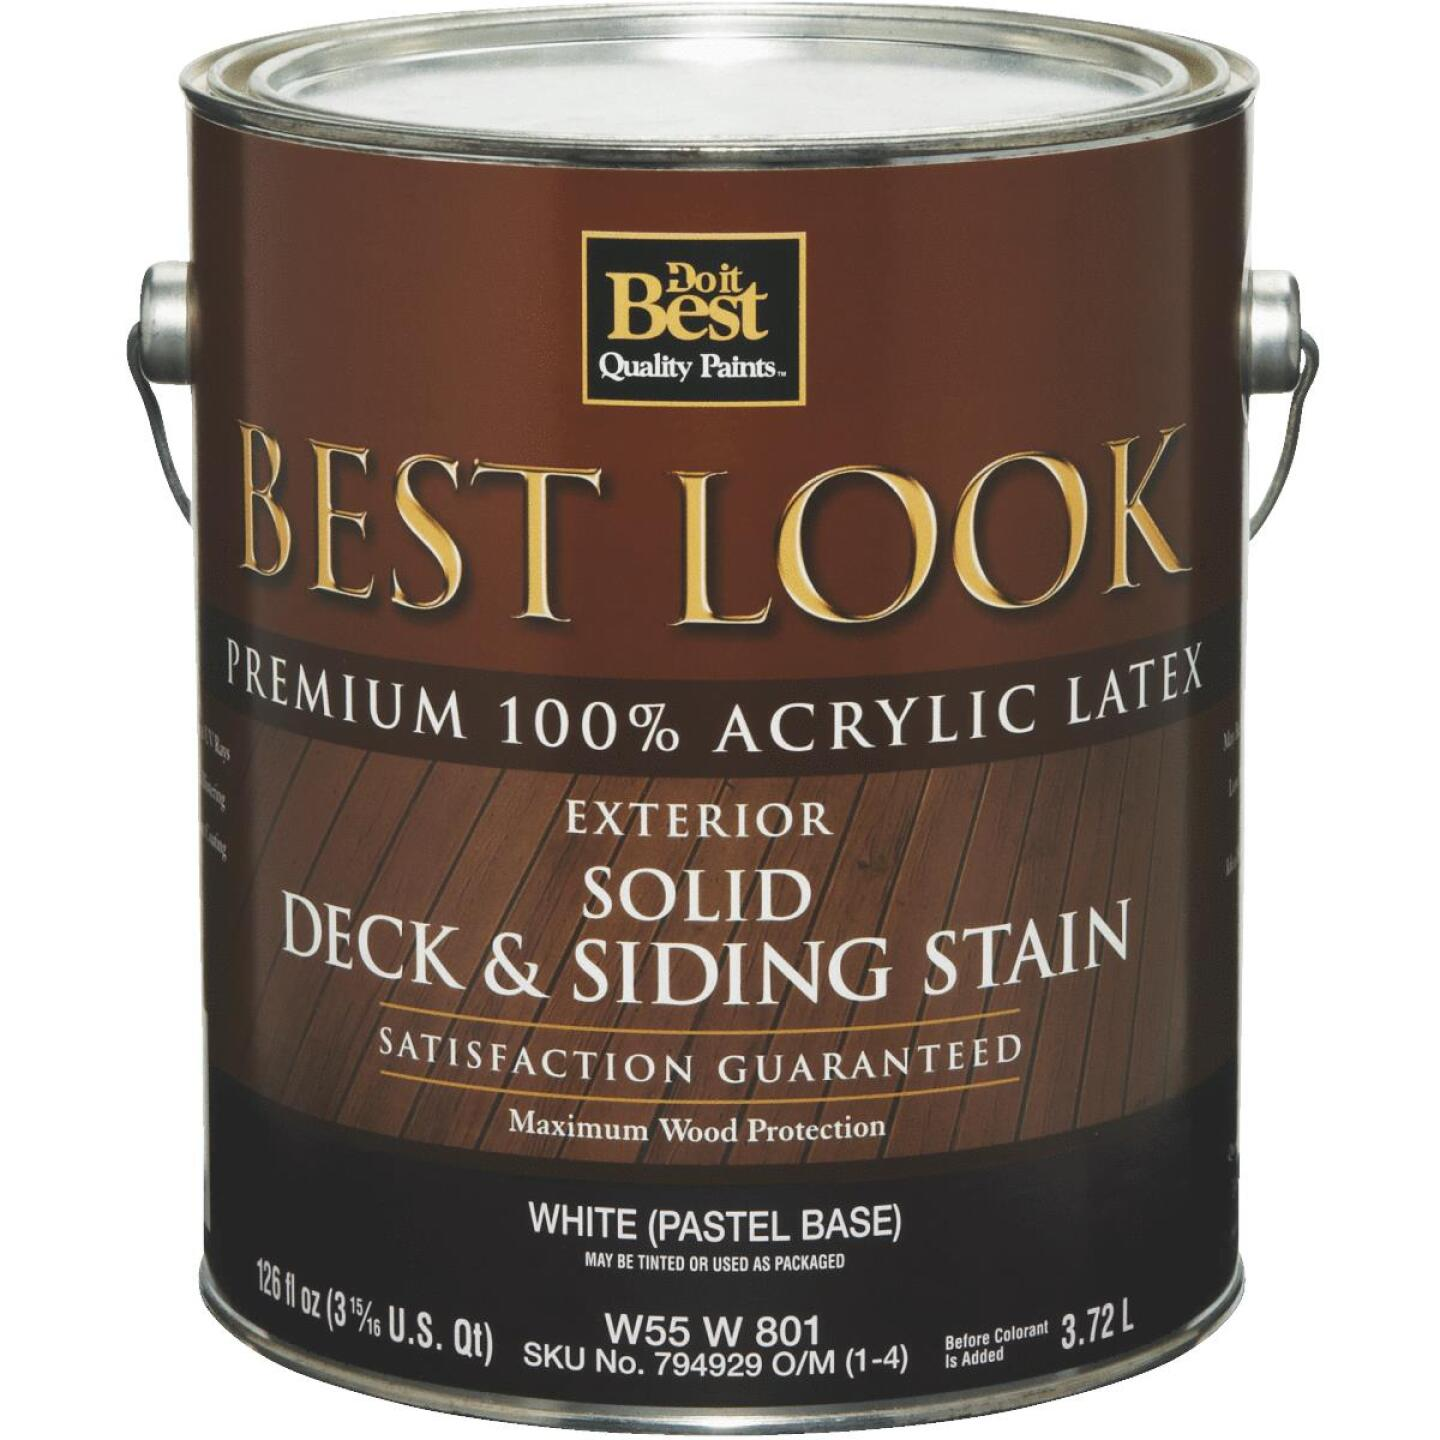 Best Look Solid Deck & Siding Exterior Stain, White Pastel Base, 1 Gal. Image 1